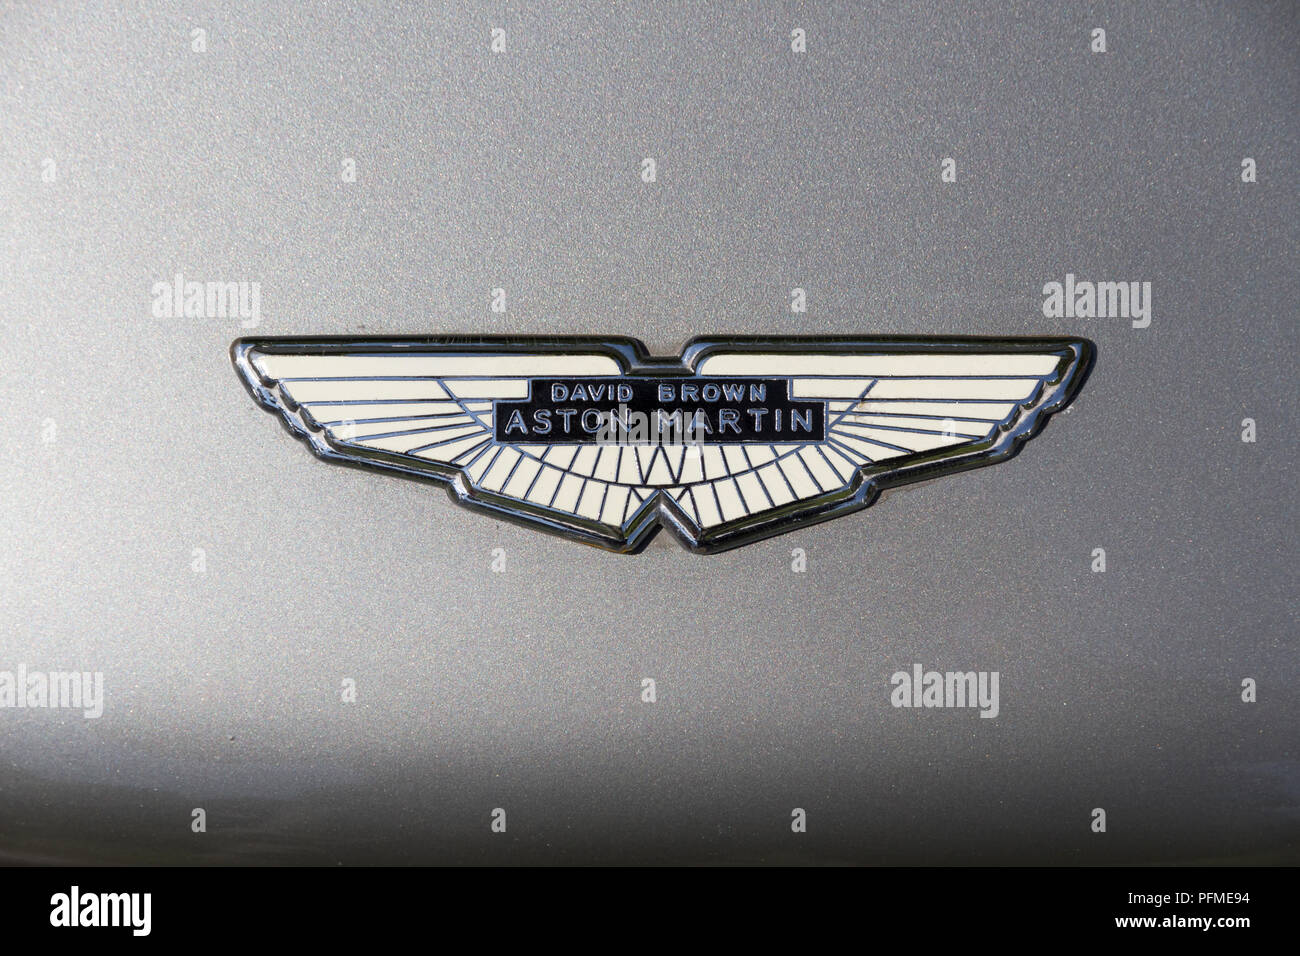 aston martin emblem stock photos & aston martin emblem stock images